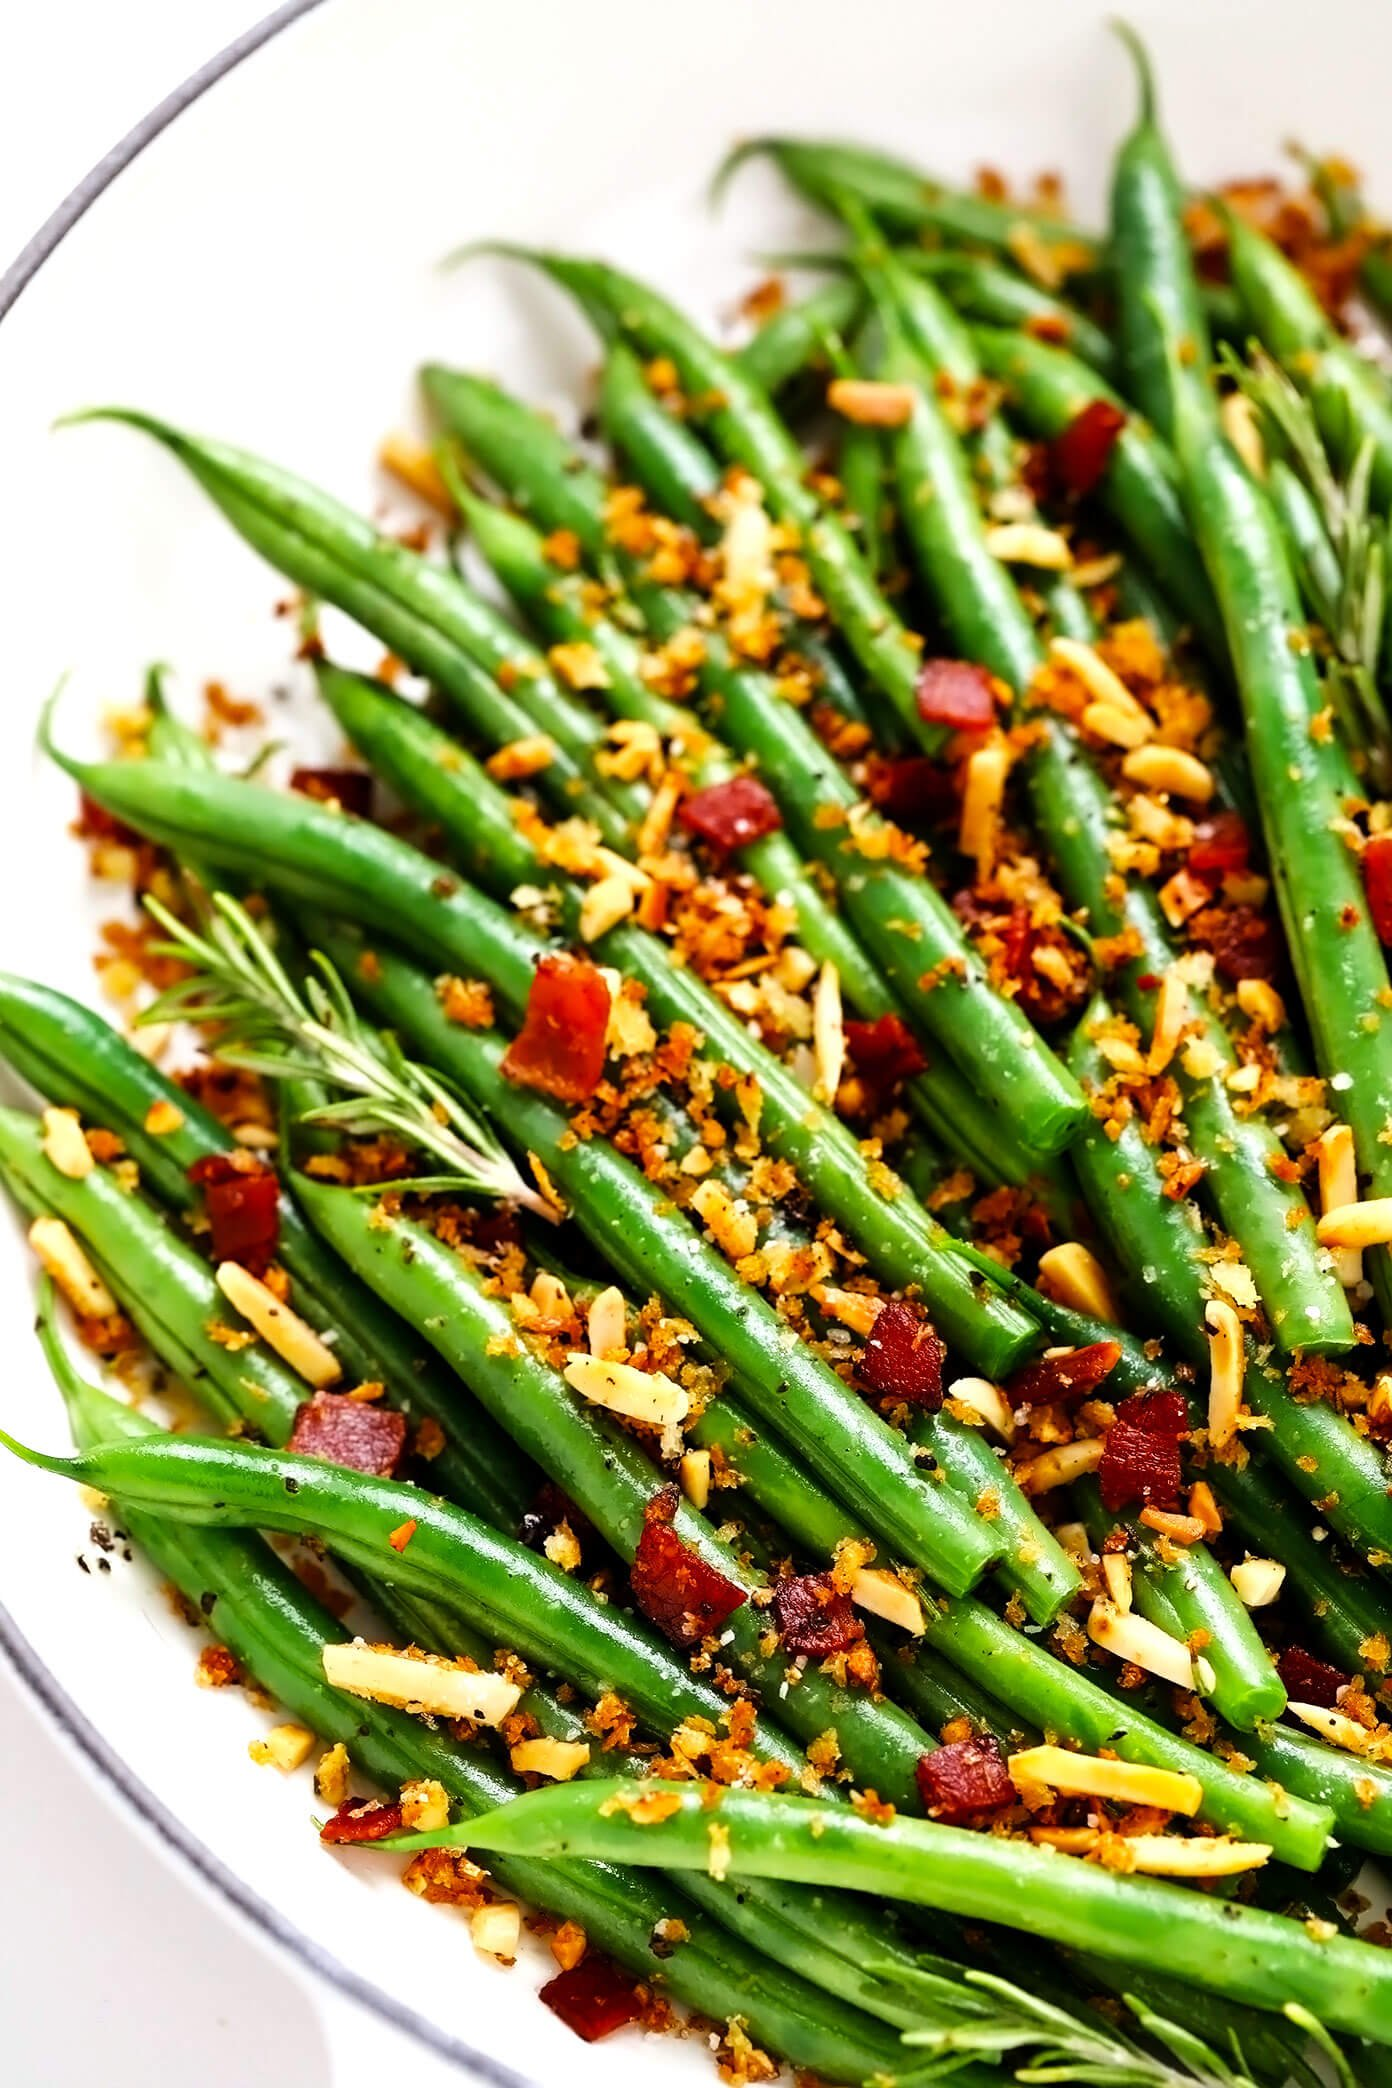 Green Beans with Rosemary Bacon Breadcrumbs in Saute Pan